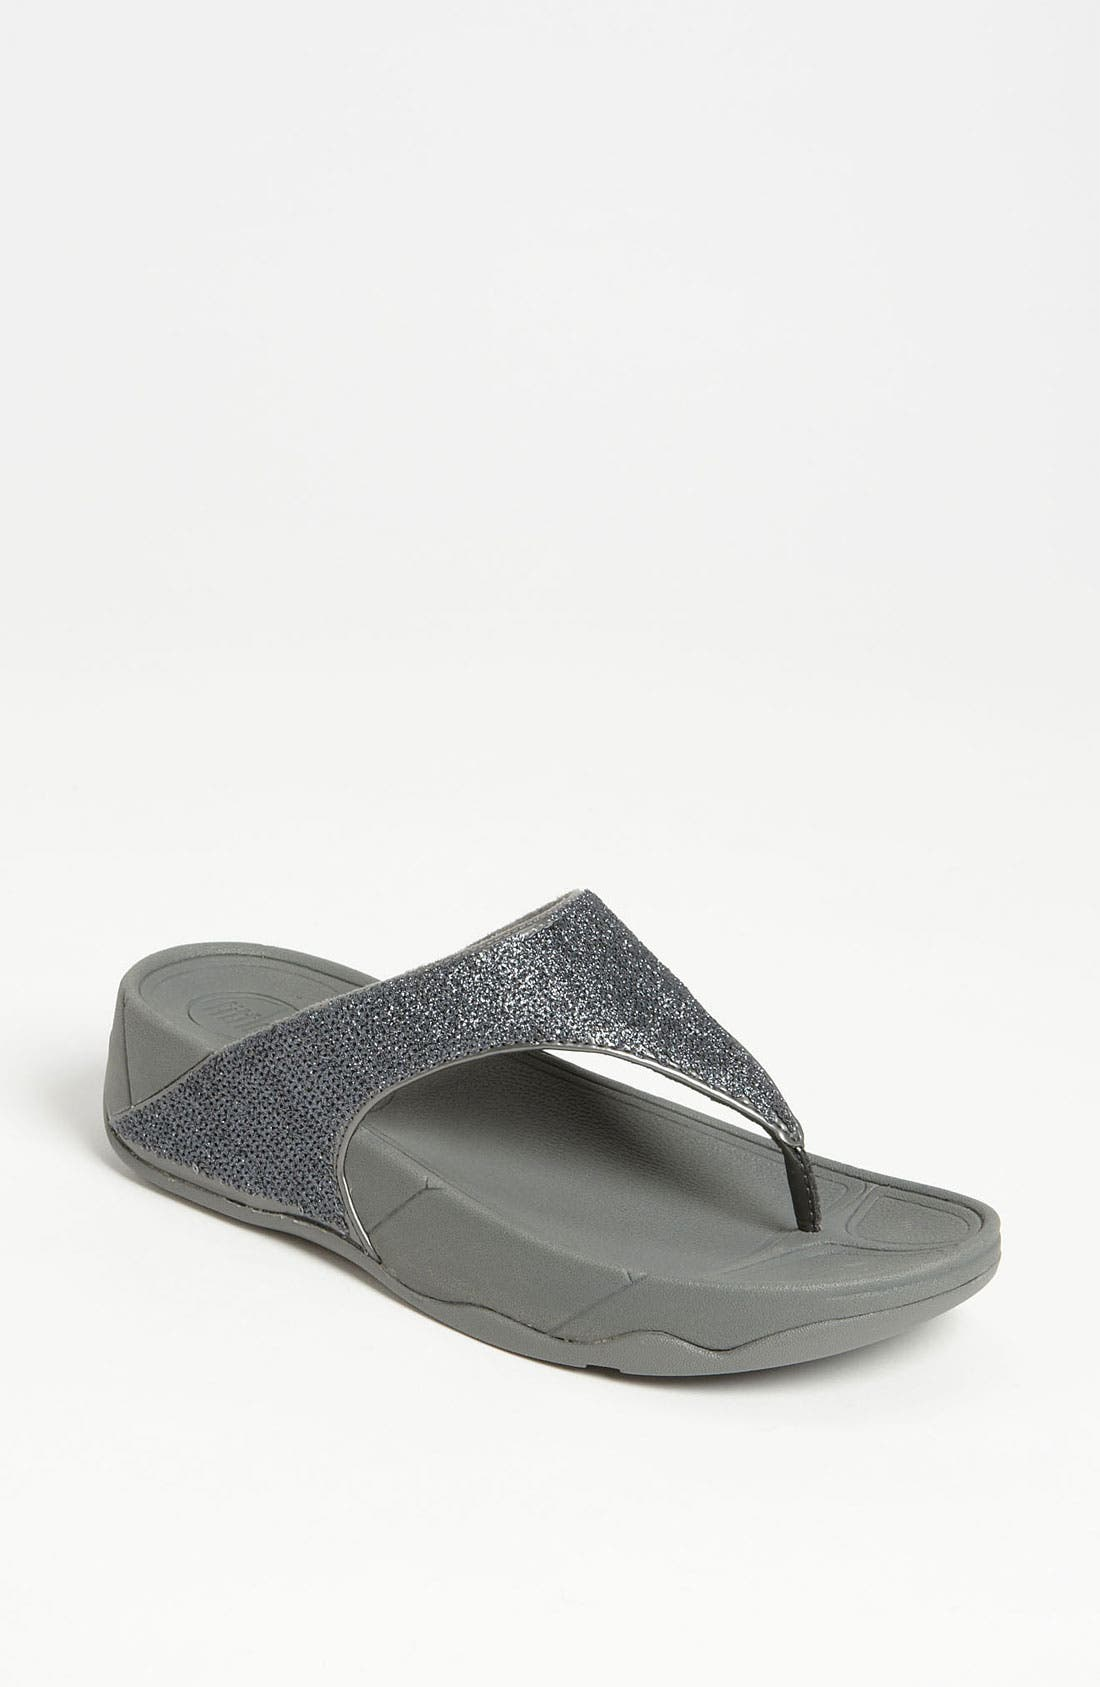 Alternate Image 1 Selected - FitFlop 'Astrid™' Sandal